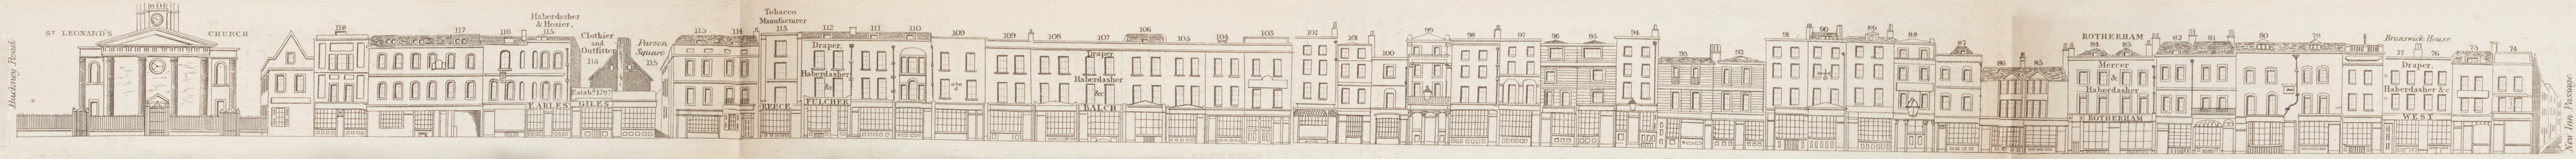 map - Tallis's London street views : No. 61. Shoreditch, division 3 (east)